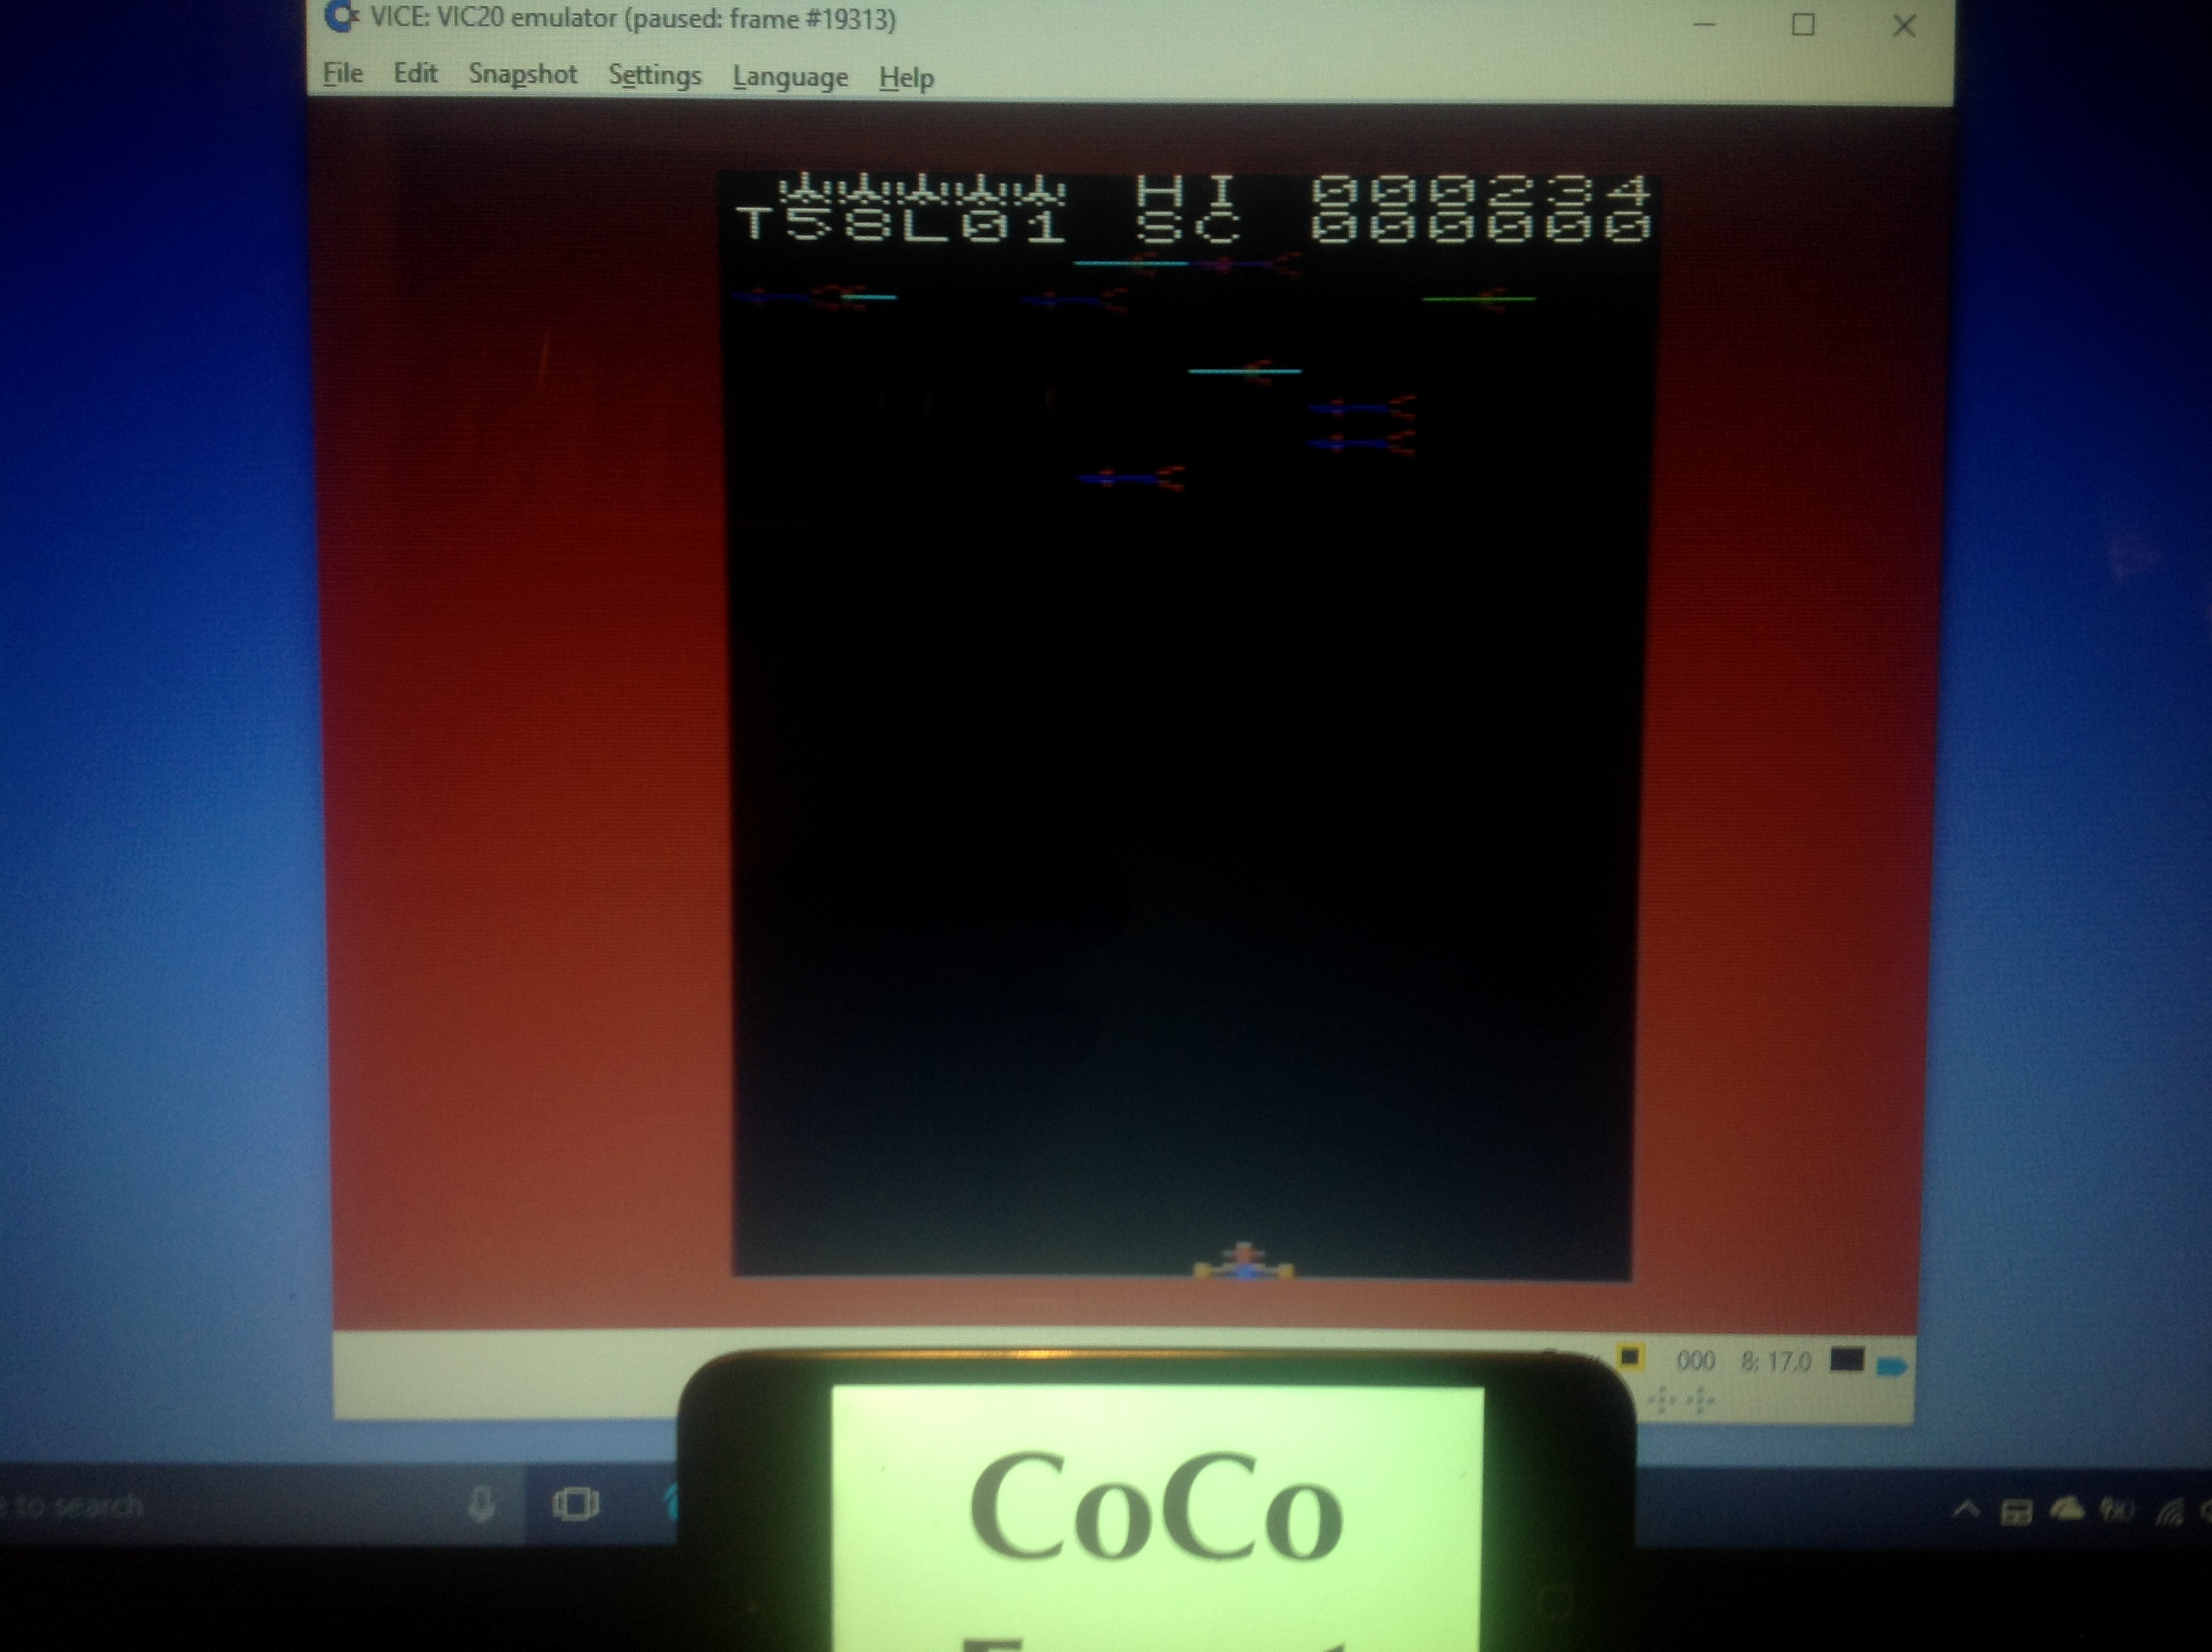 CoCoForest: Arcadia (Commodore VIC-20 Emulated) 234 points on 2018-01-21 10:33:40